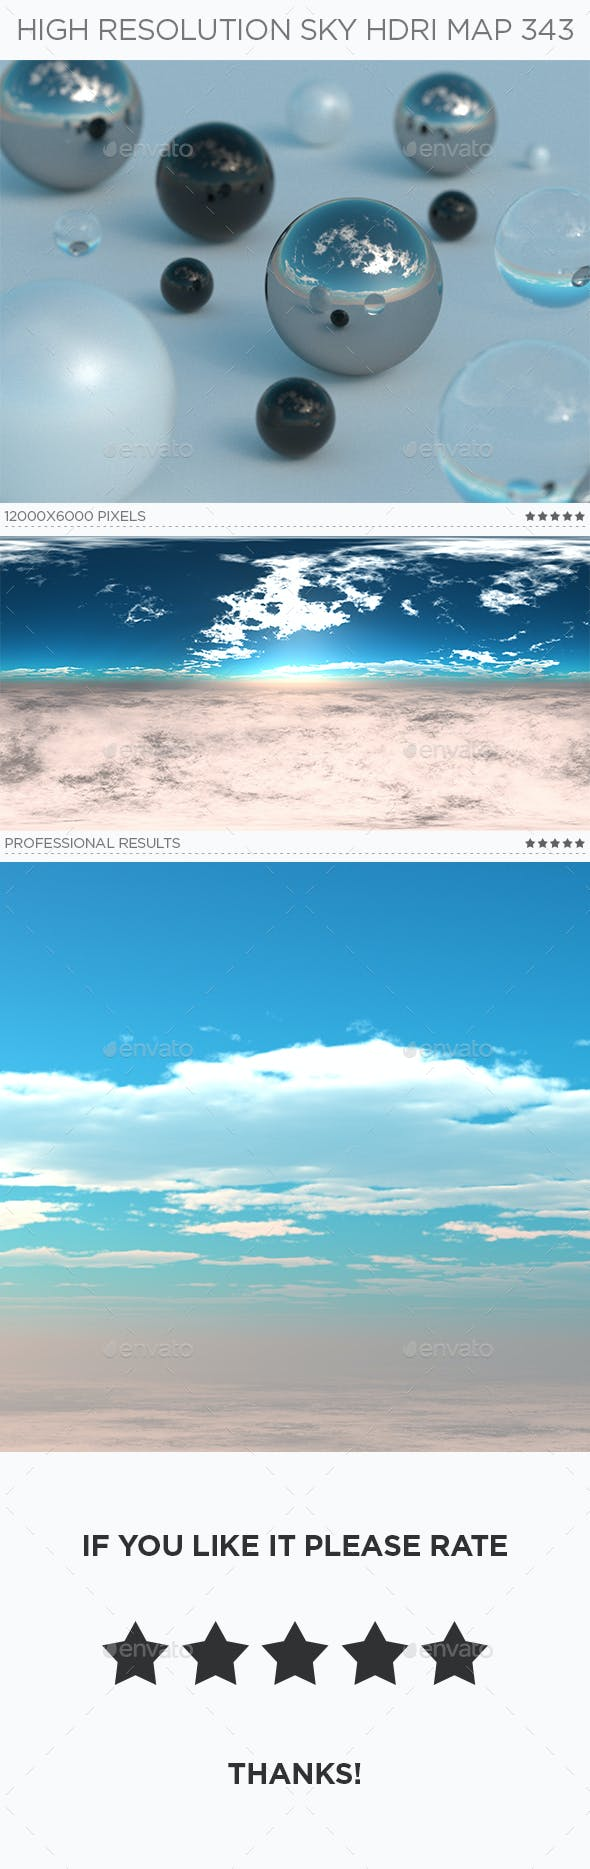 High Resolution Sky HDRi Map 343 - 3DOcean Item for Sale